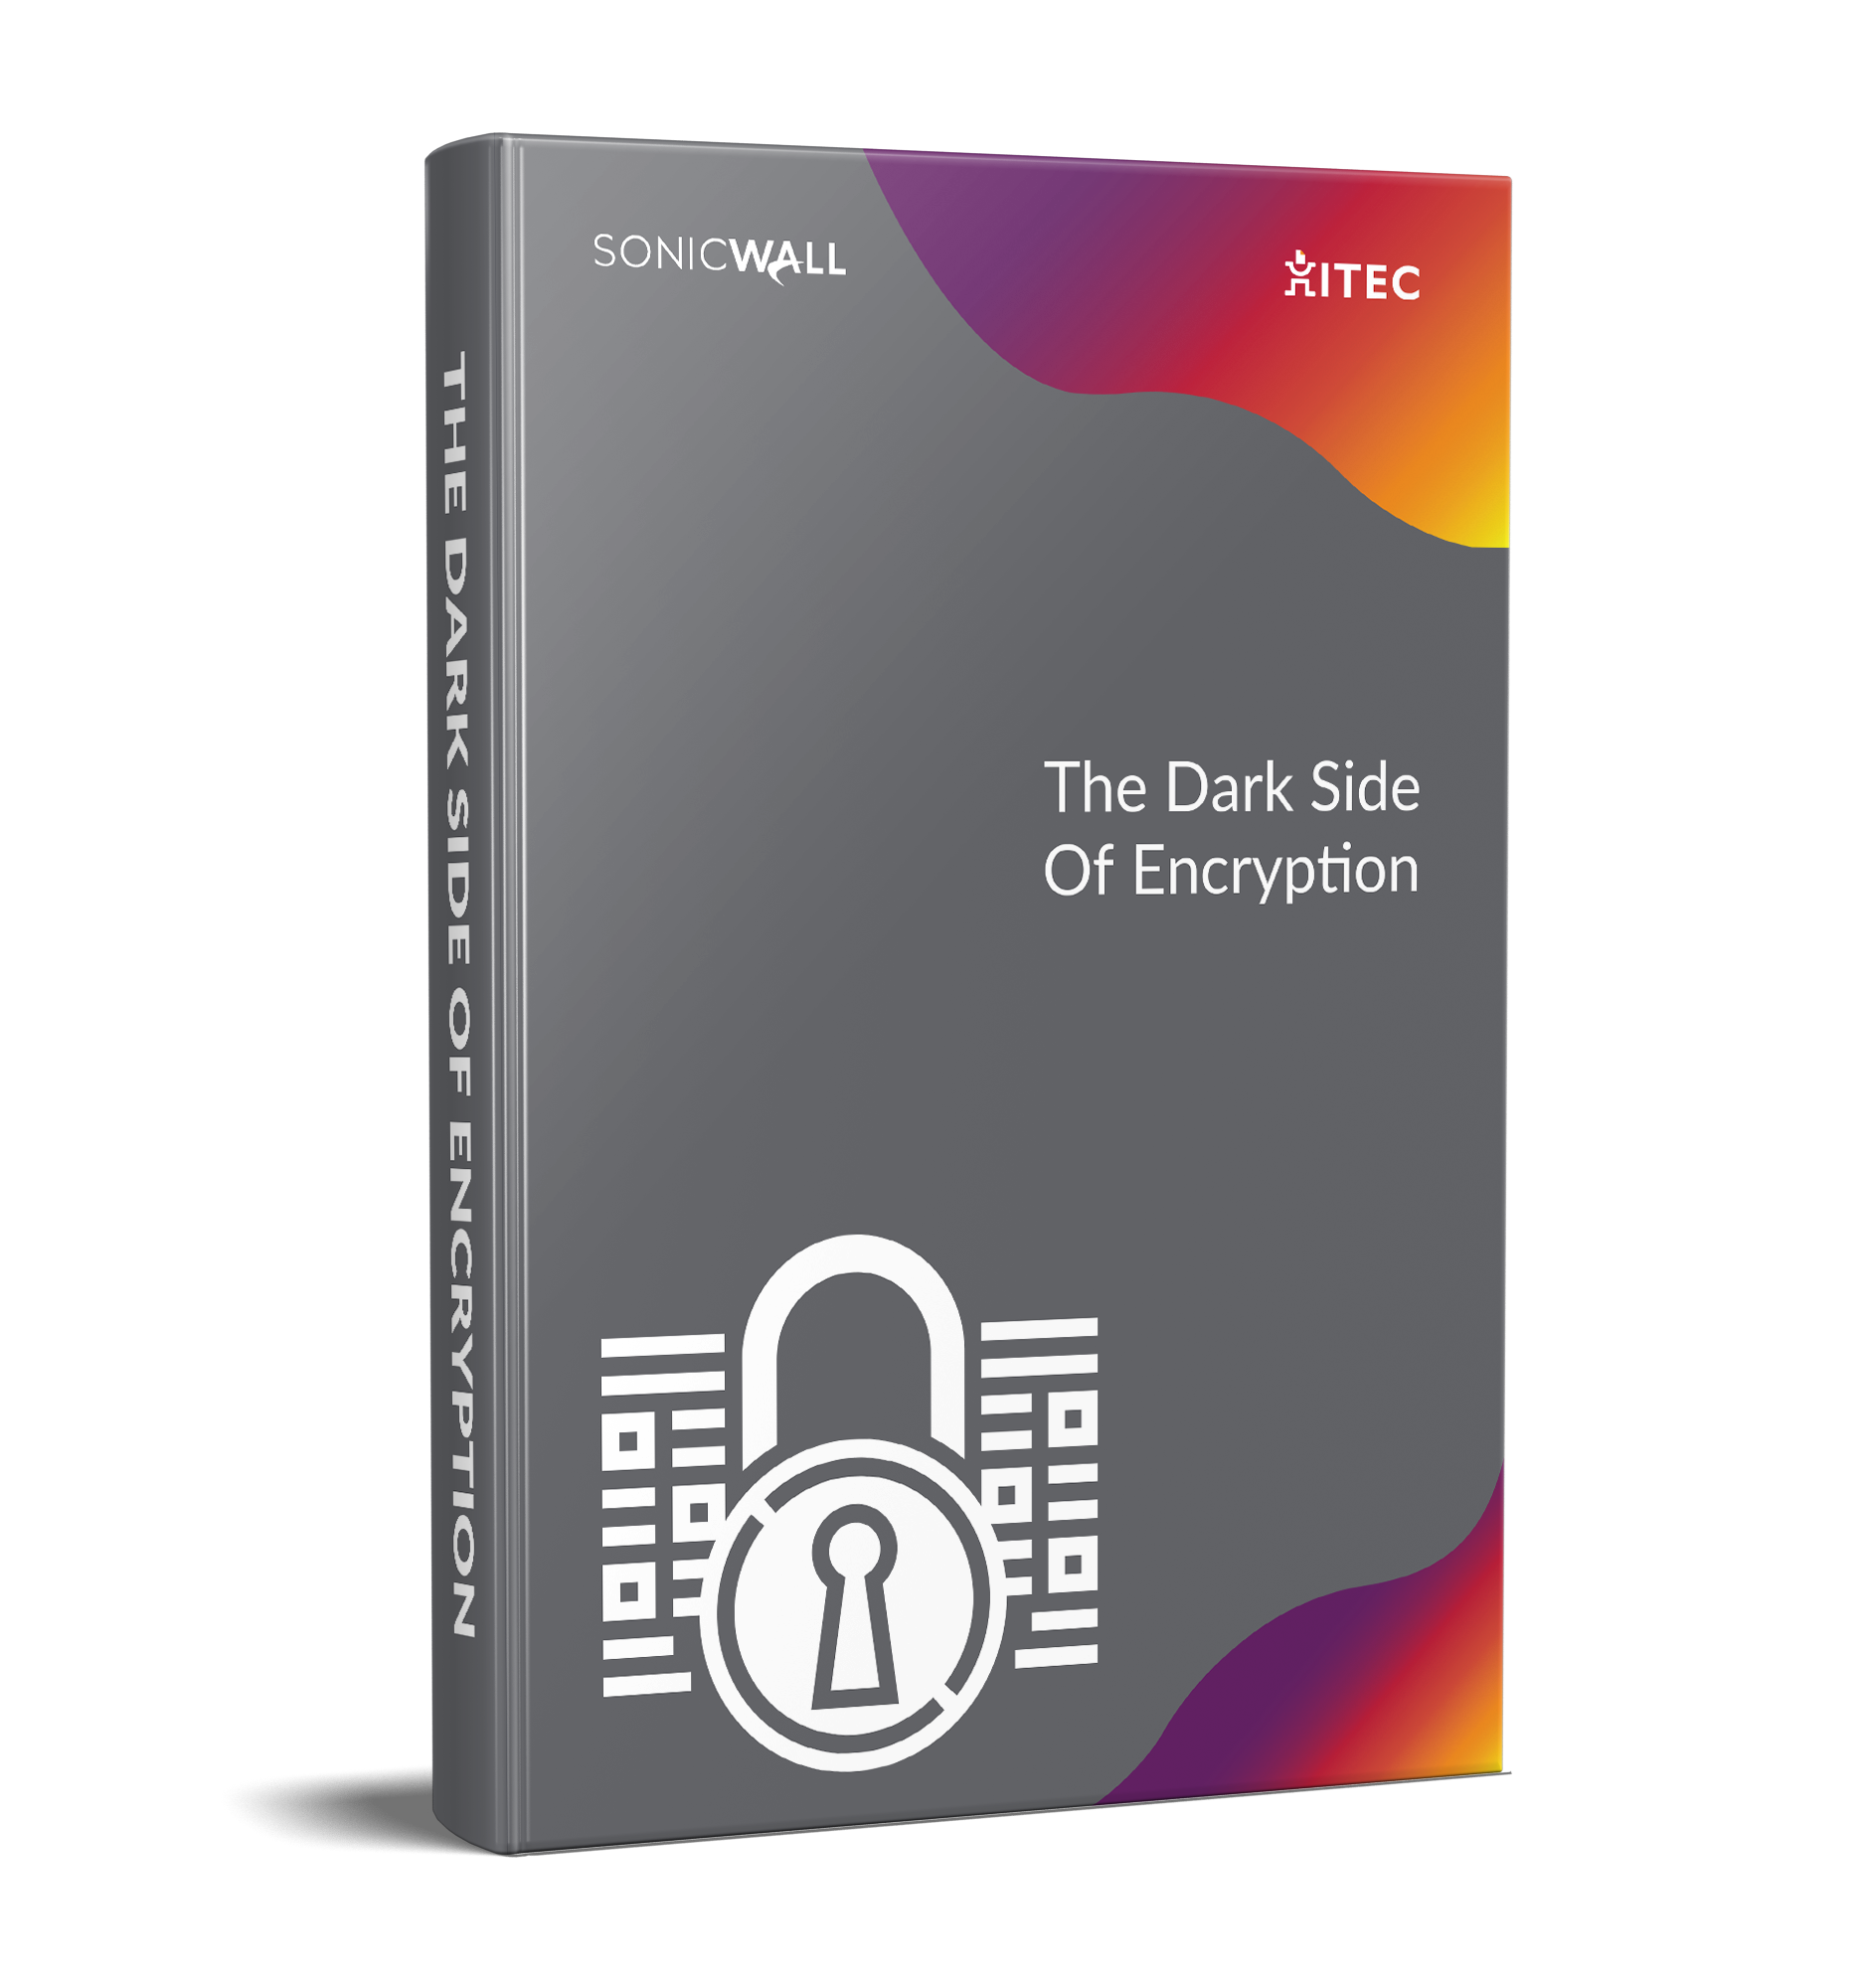 THE-DARK-SIDE-OF-ENCRYPTION